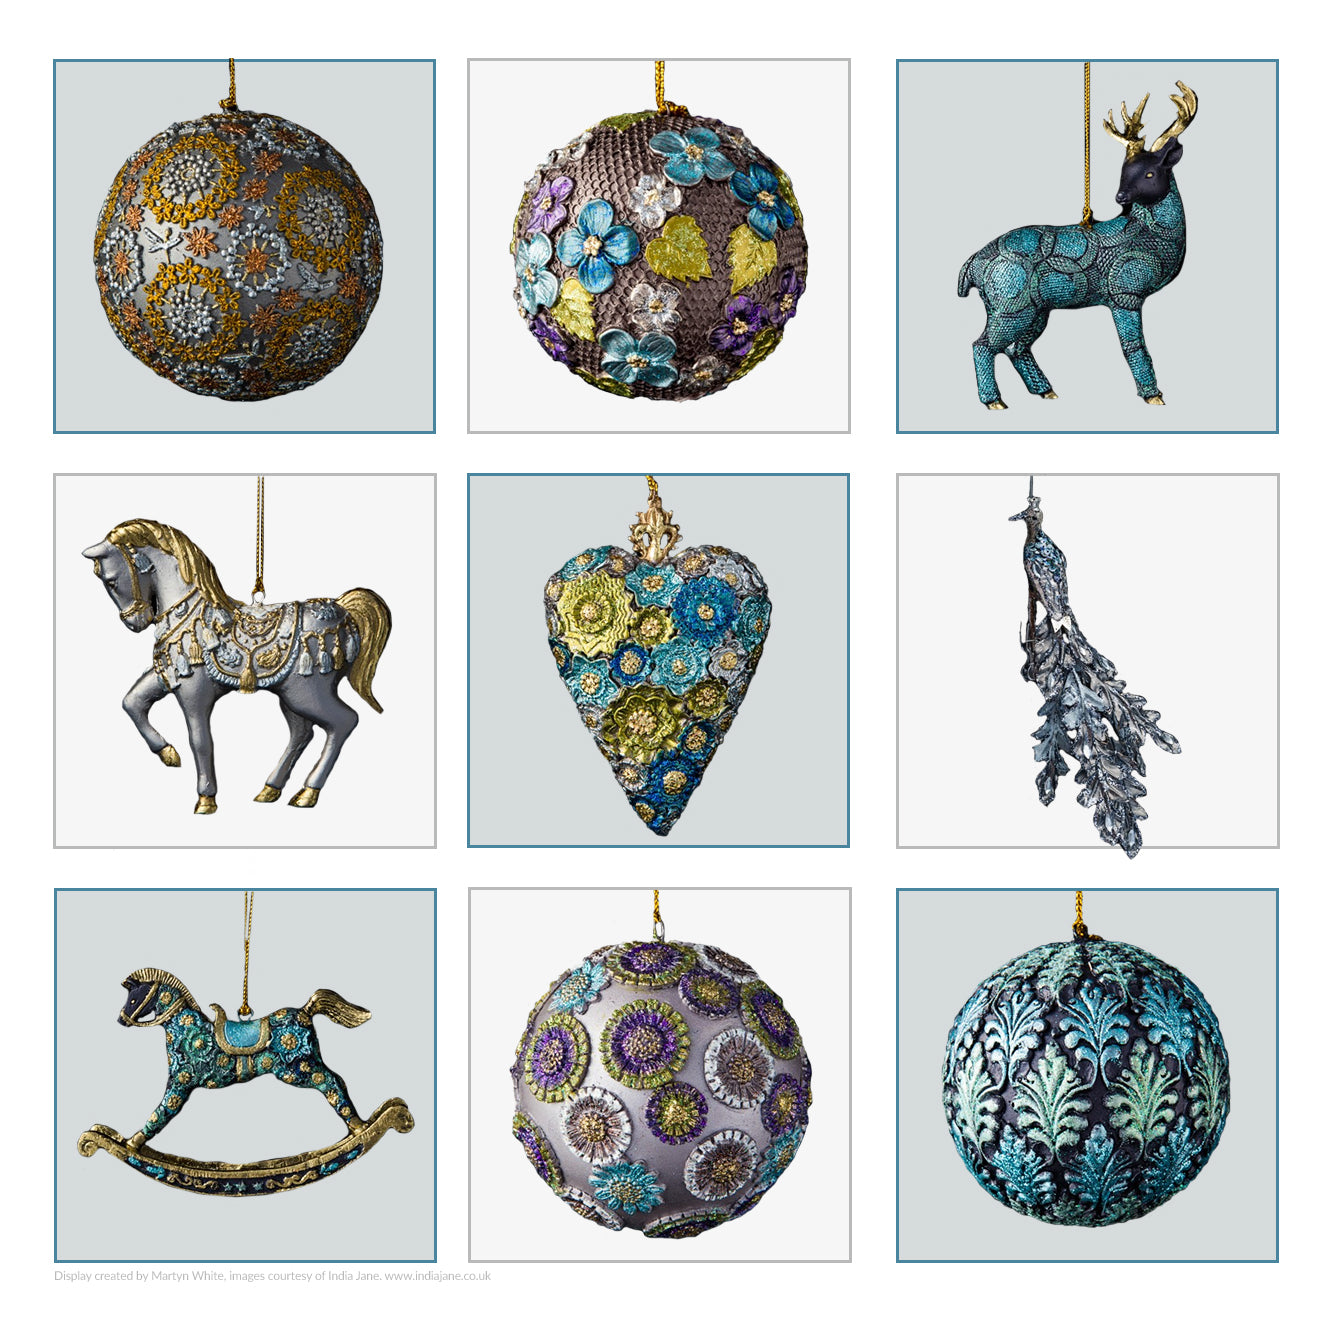 India Jane Christmas decorations and ornaments